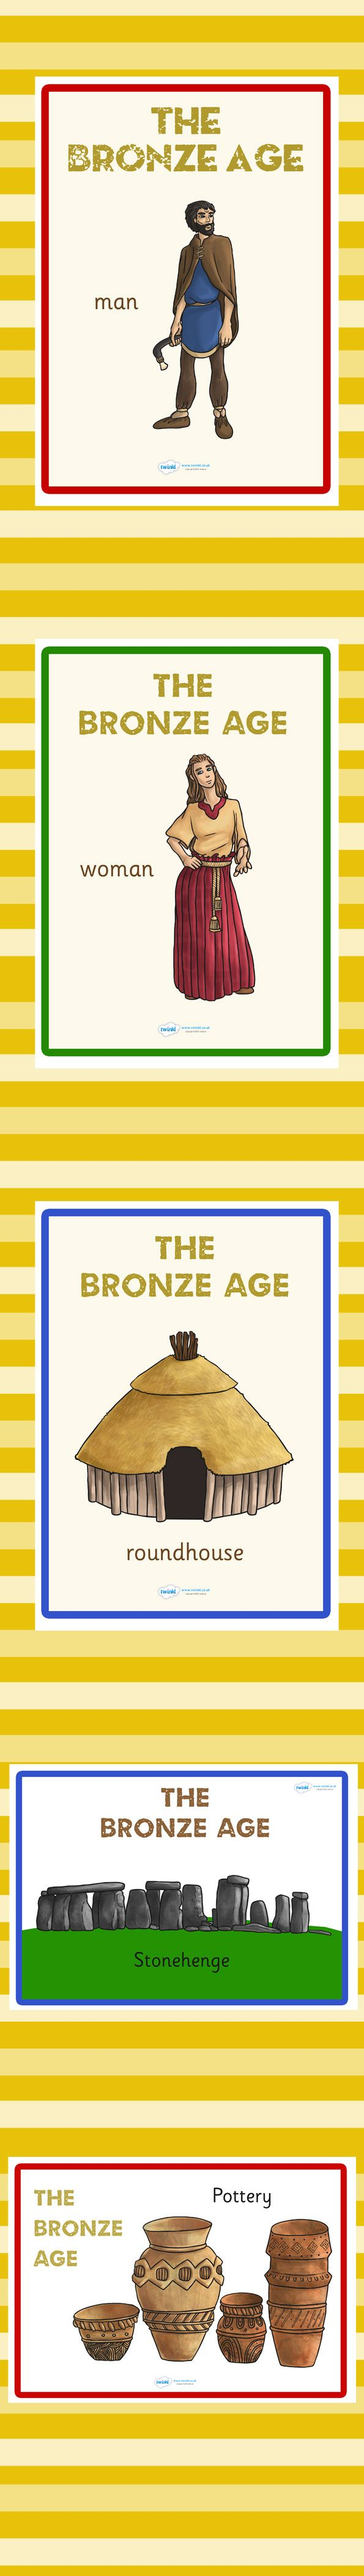 KS2 Bronze Age- Bronze Age Display Posters